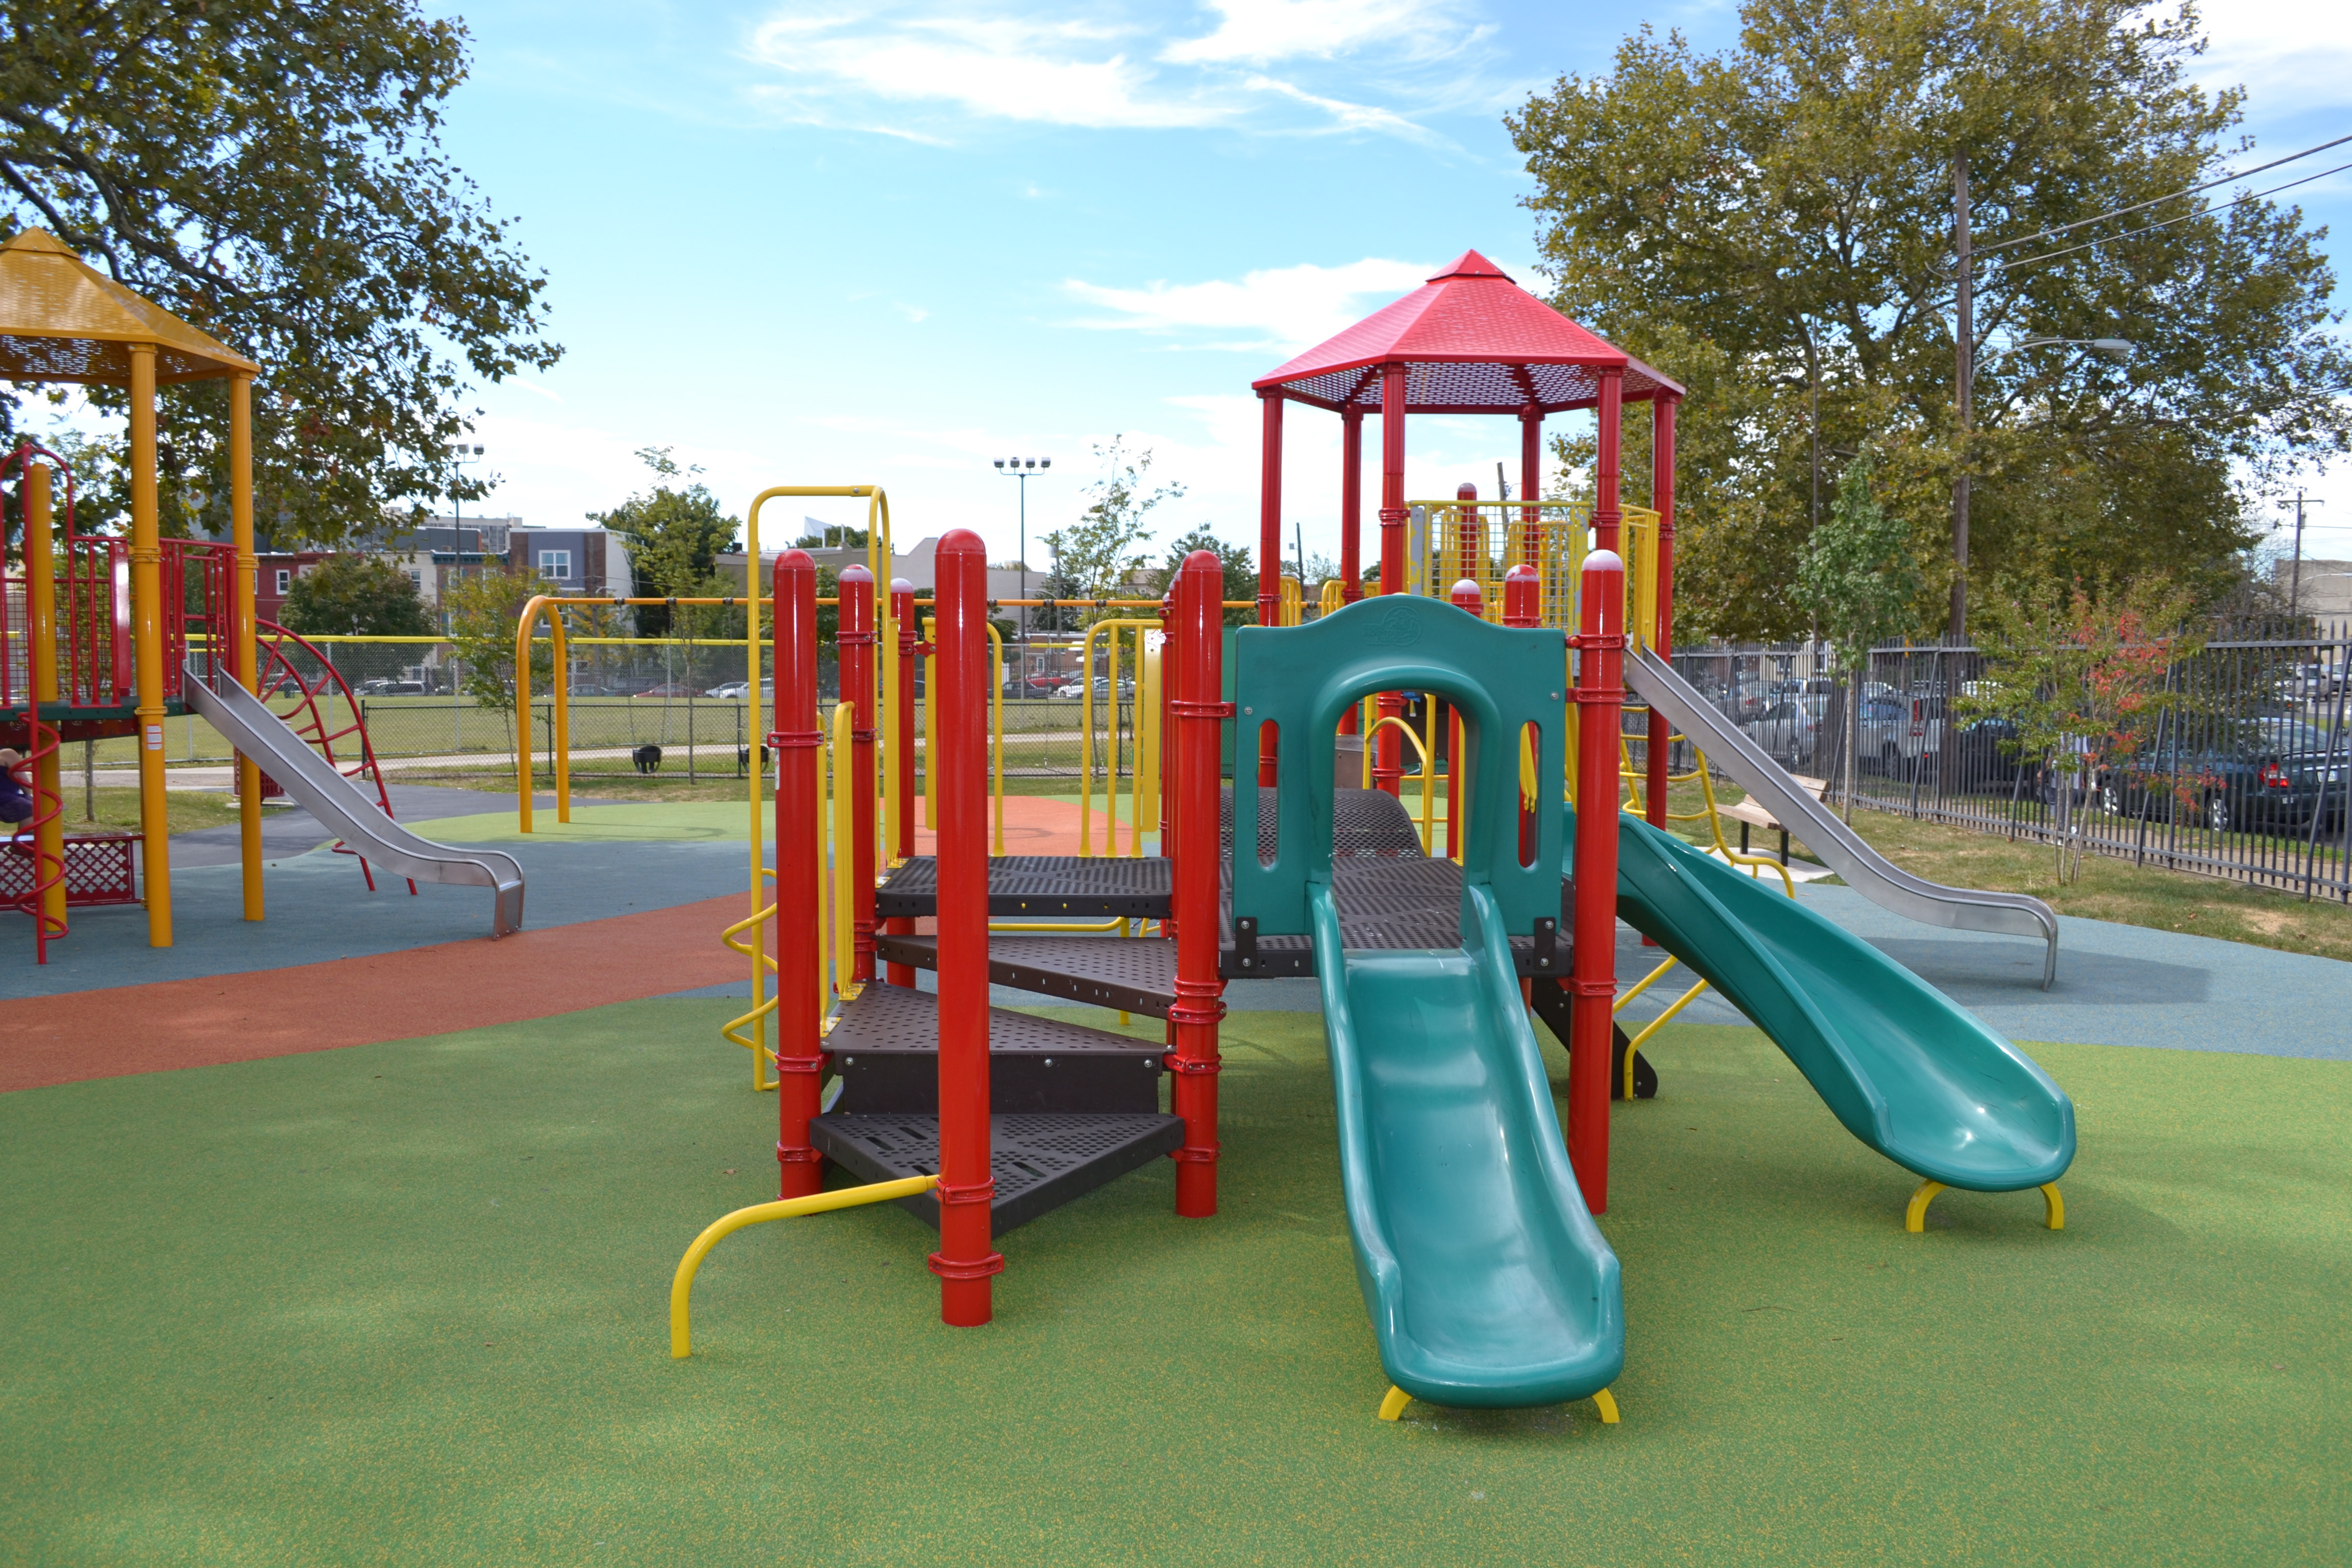 Francisville Playground's new, bright play equipment